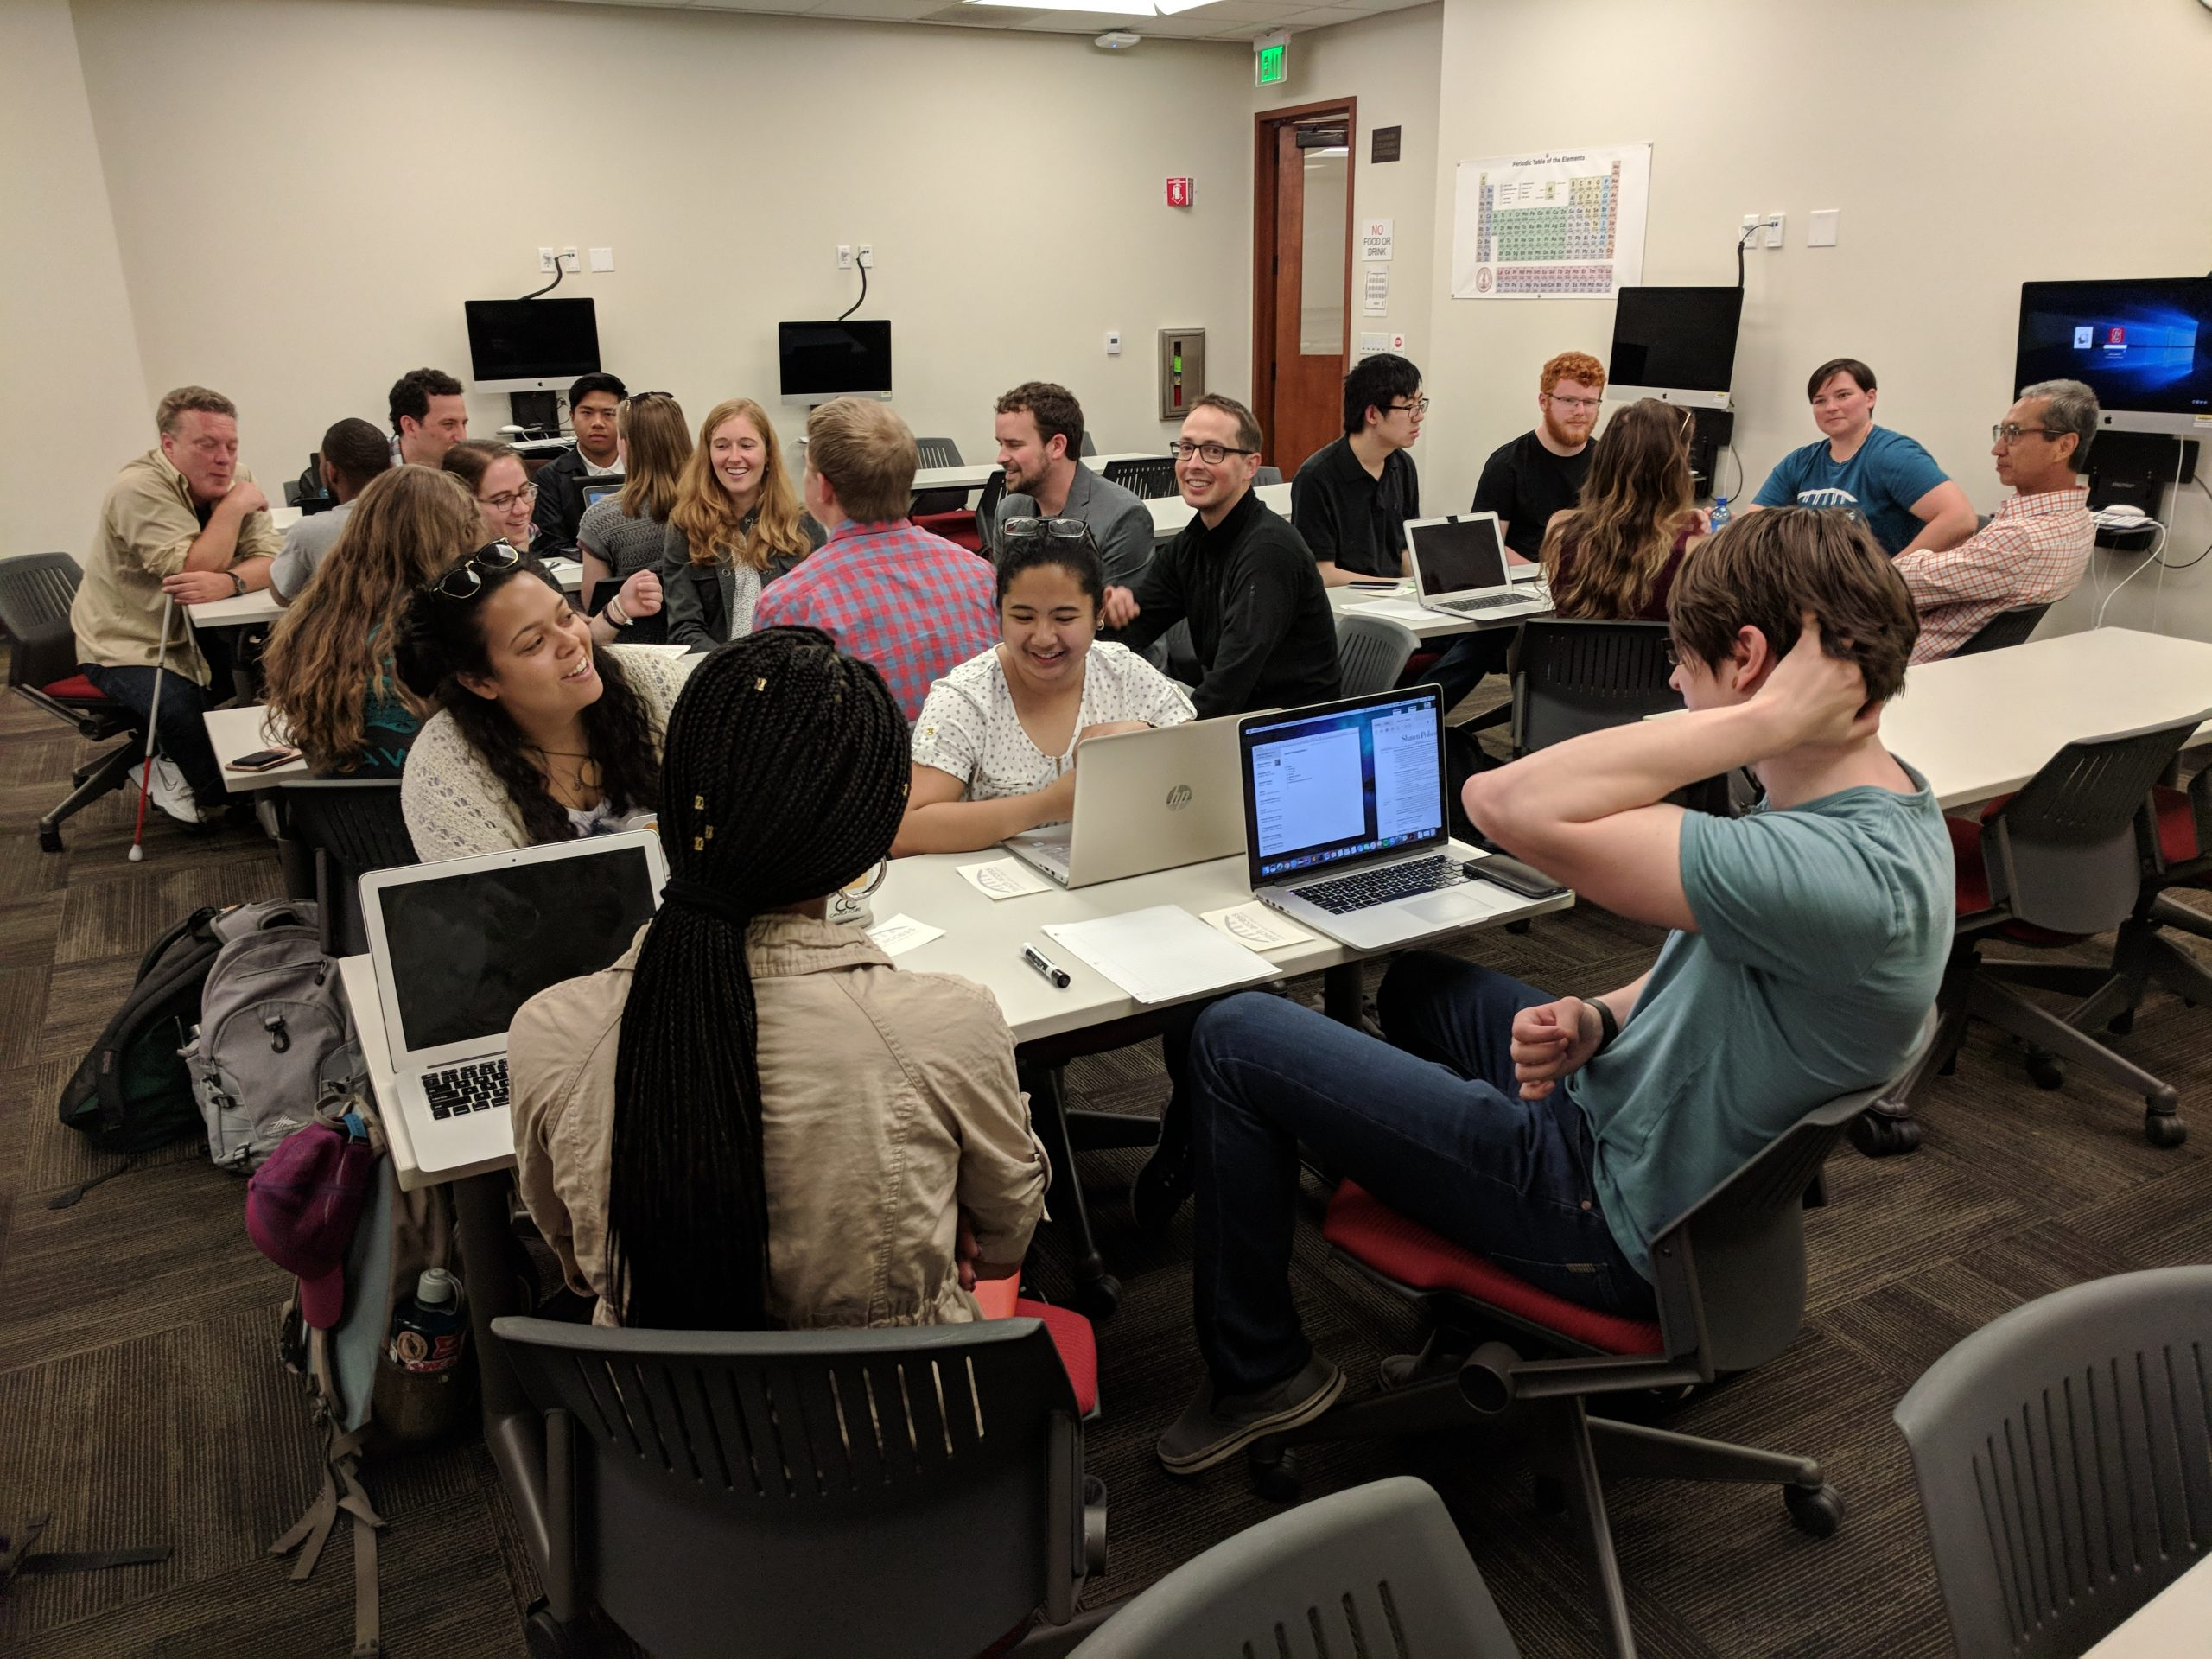 Room of students in conversation, seated in groups of 4-6 at tables